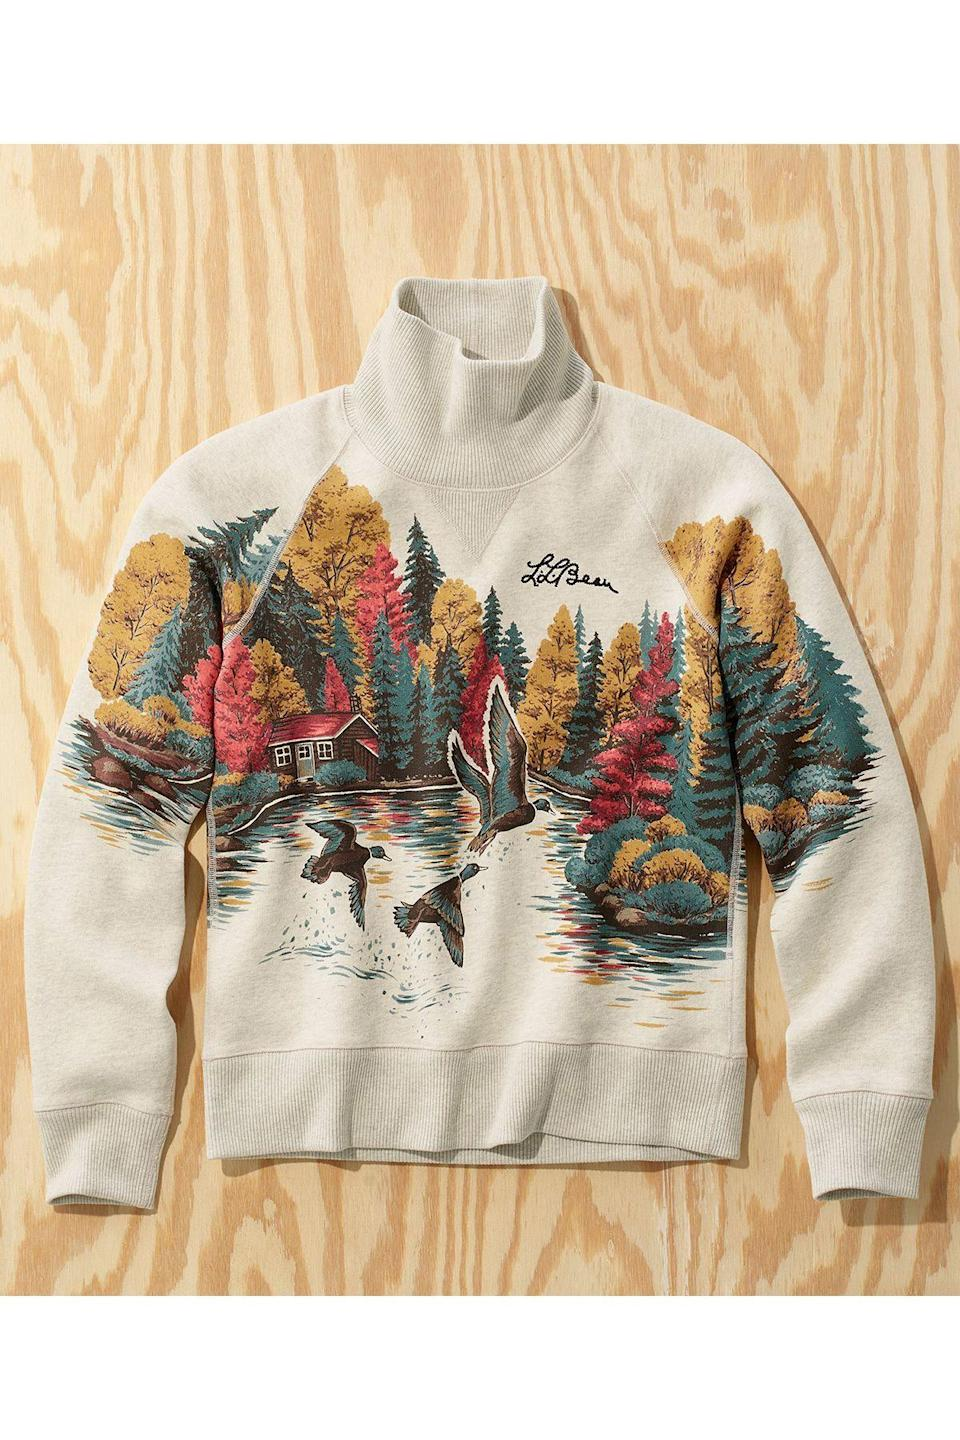 """<p><strong>L.L.Bean x Todd Snyder</strong></p><p>toddsnyder.com</p><p><a href=""""https://go.redirectingat.com?id=74968X1596630&url=https%3A%2F%2Fwww.toddsnyder.com%2Fcollections%2Fl-l-bean-x-todd-snyder-three%2Fproducts%2Fllb-x-ts-duck-scenic-sweatshirt-light-grey-heather-1&sref=https%3A%2F%2Fwww.townandcountrymag.com%2Fstyle%2Fmens-fashion%2Fg34524507%2Ftodd-snyder-and-ll-bean-collaboration%2F"""" rel=""""nofollow noopener"""" target=""""_blank"""" data-ylk=""""slk:Shop Now"""" class=""""link rapid-noclick-resp"""">Shop Now</a></p>"""